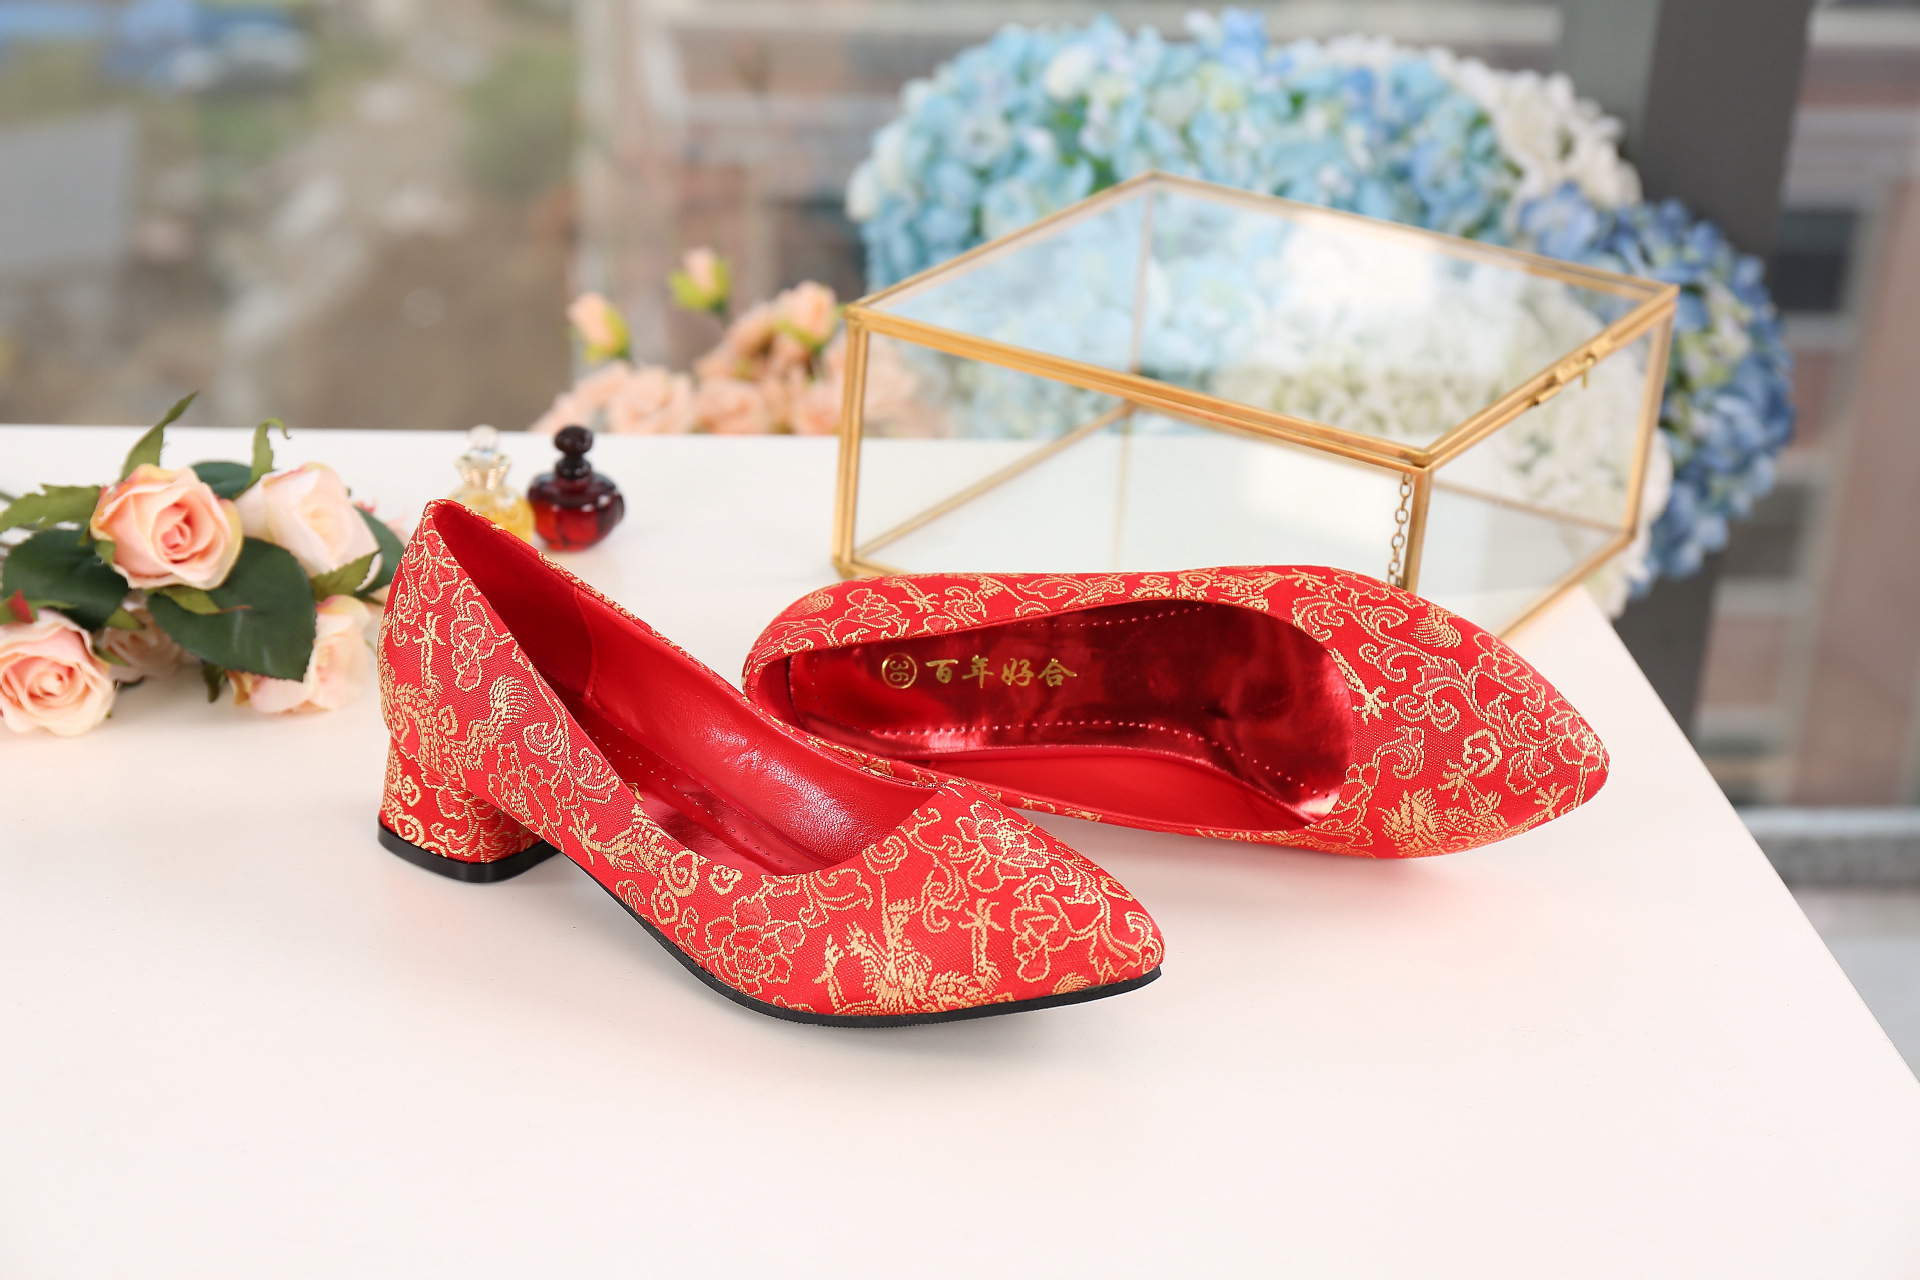 Marriage Shoes Red Chinese Style Embroidery Embroidered Chunky-Heel Semi-high Heeled Bridal Shoes Wedding Shoes Red Shoes Cheong